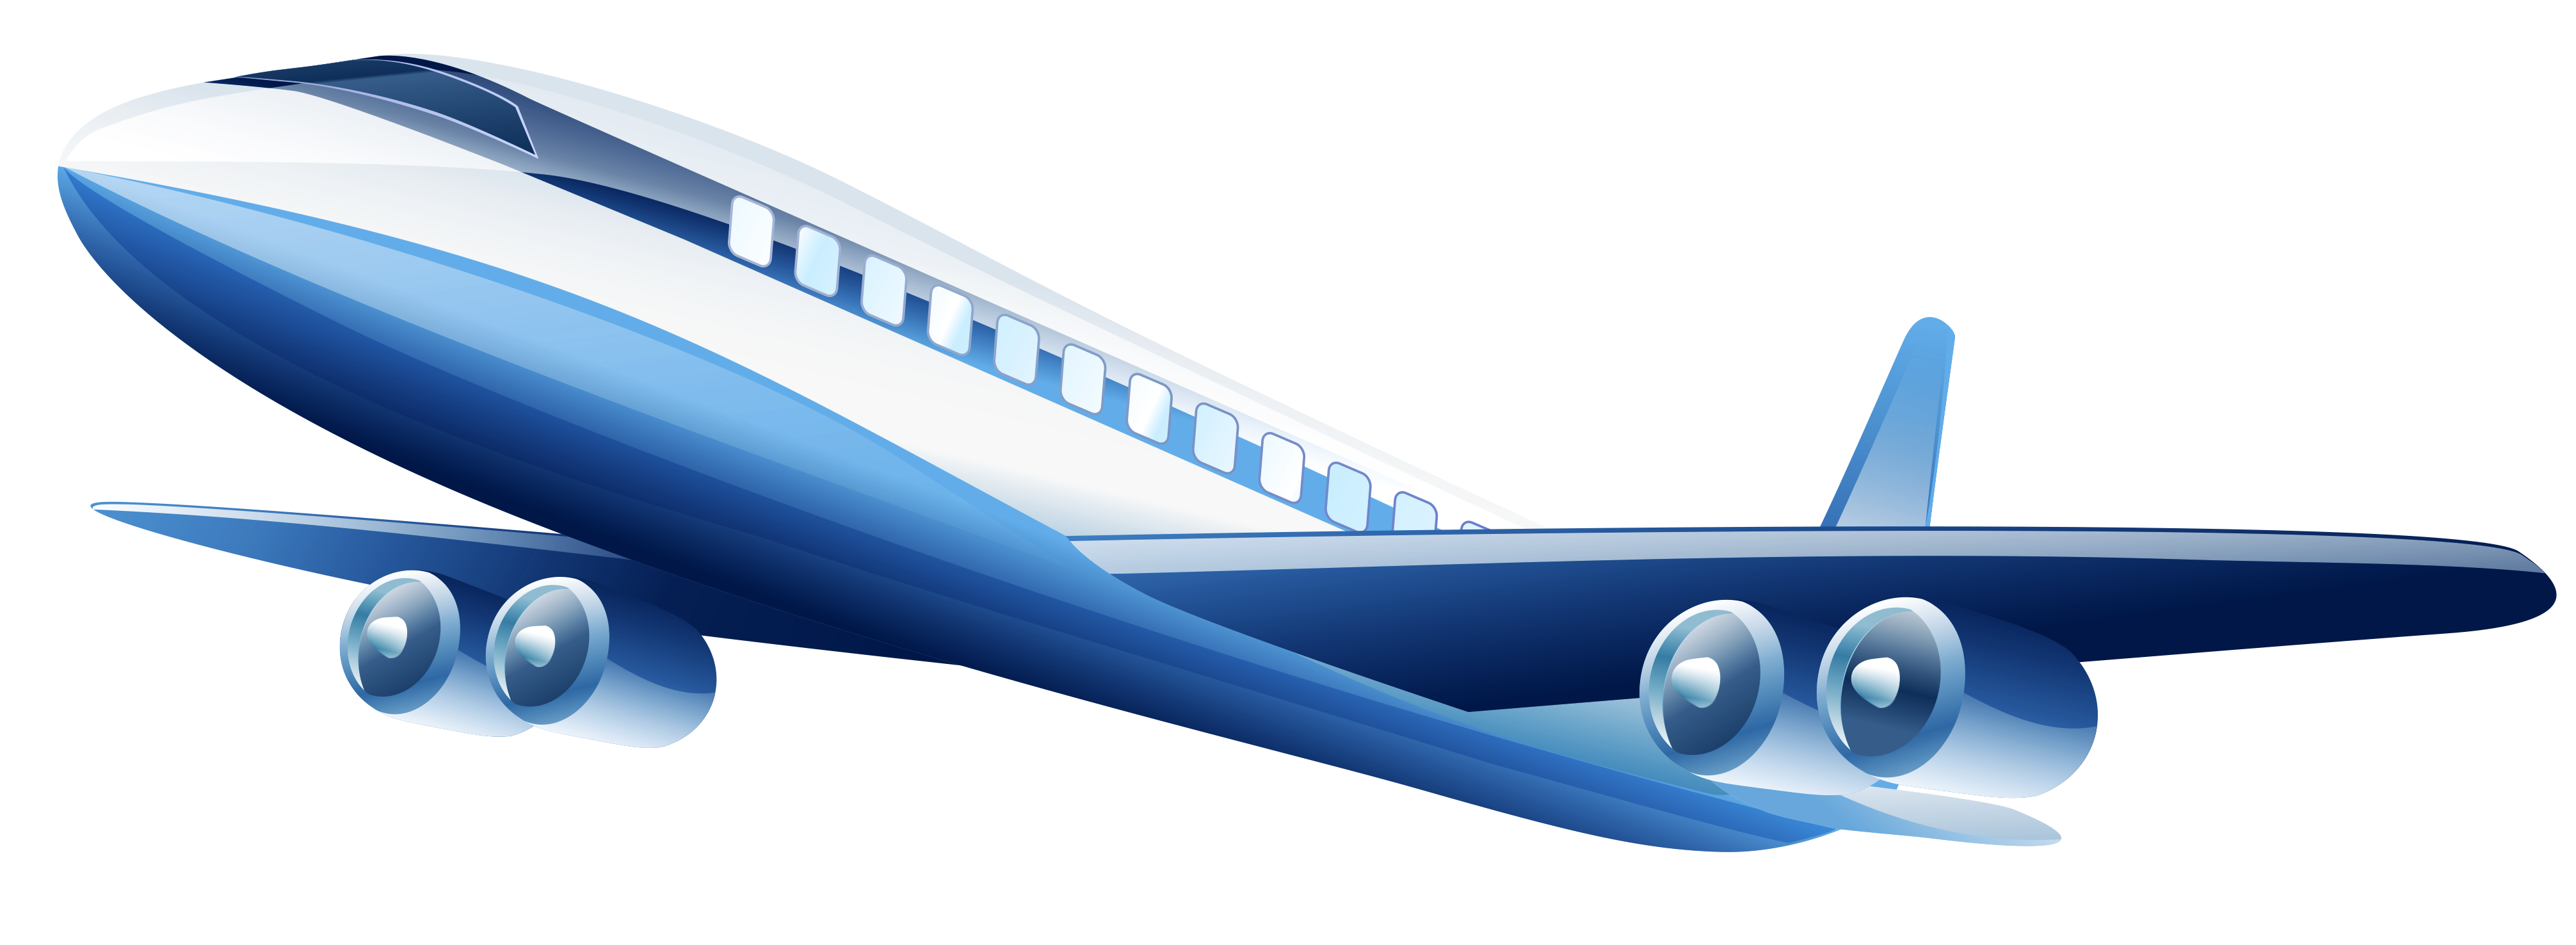 jpg freeuse library Airplane clipart. Gallery yopriceville high quality.